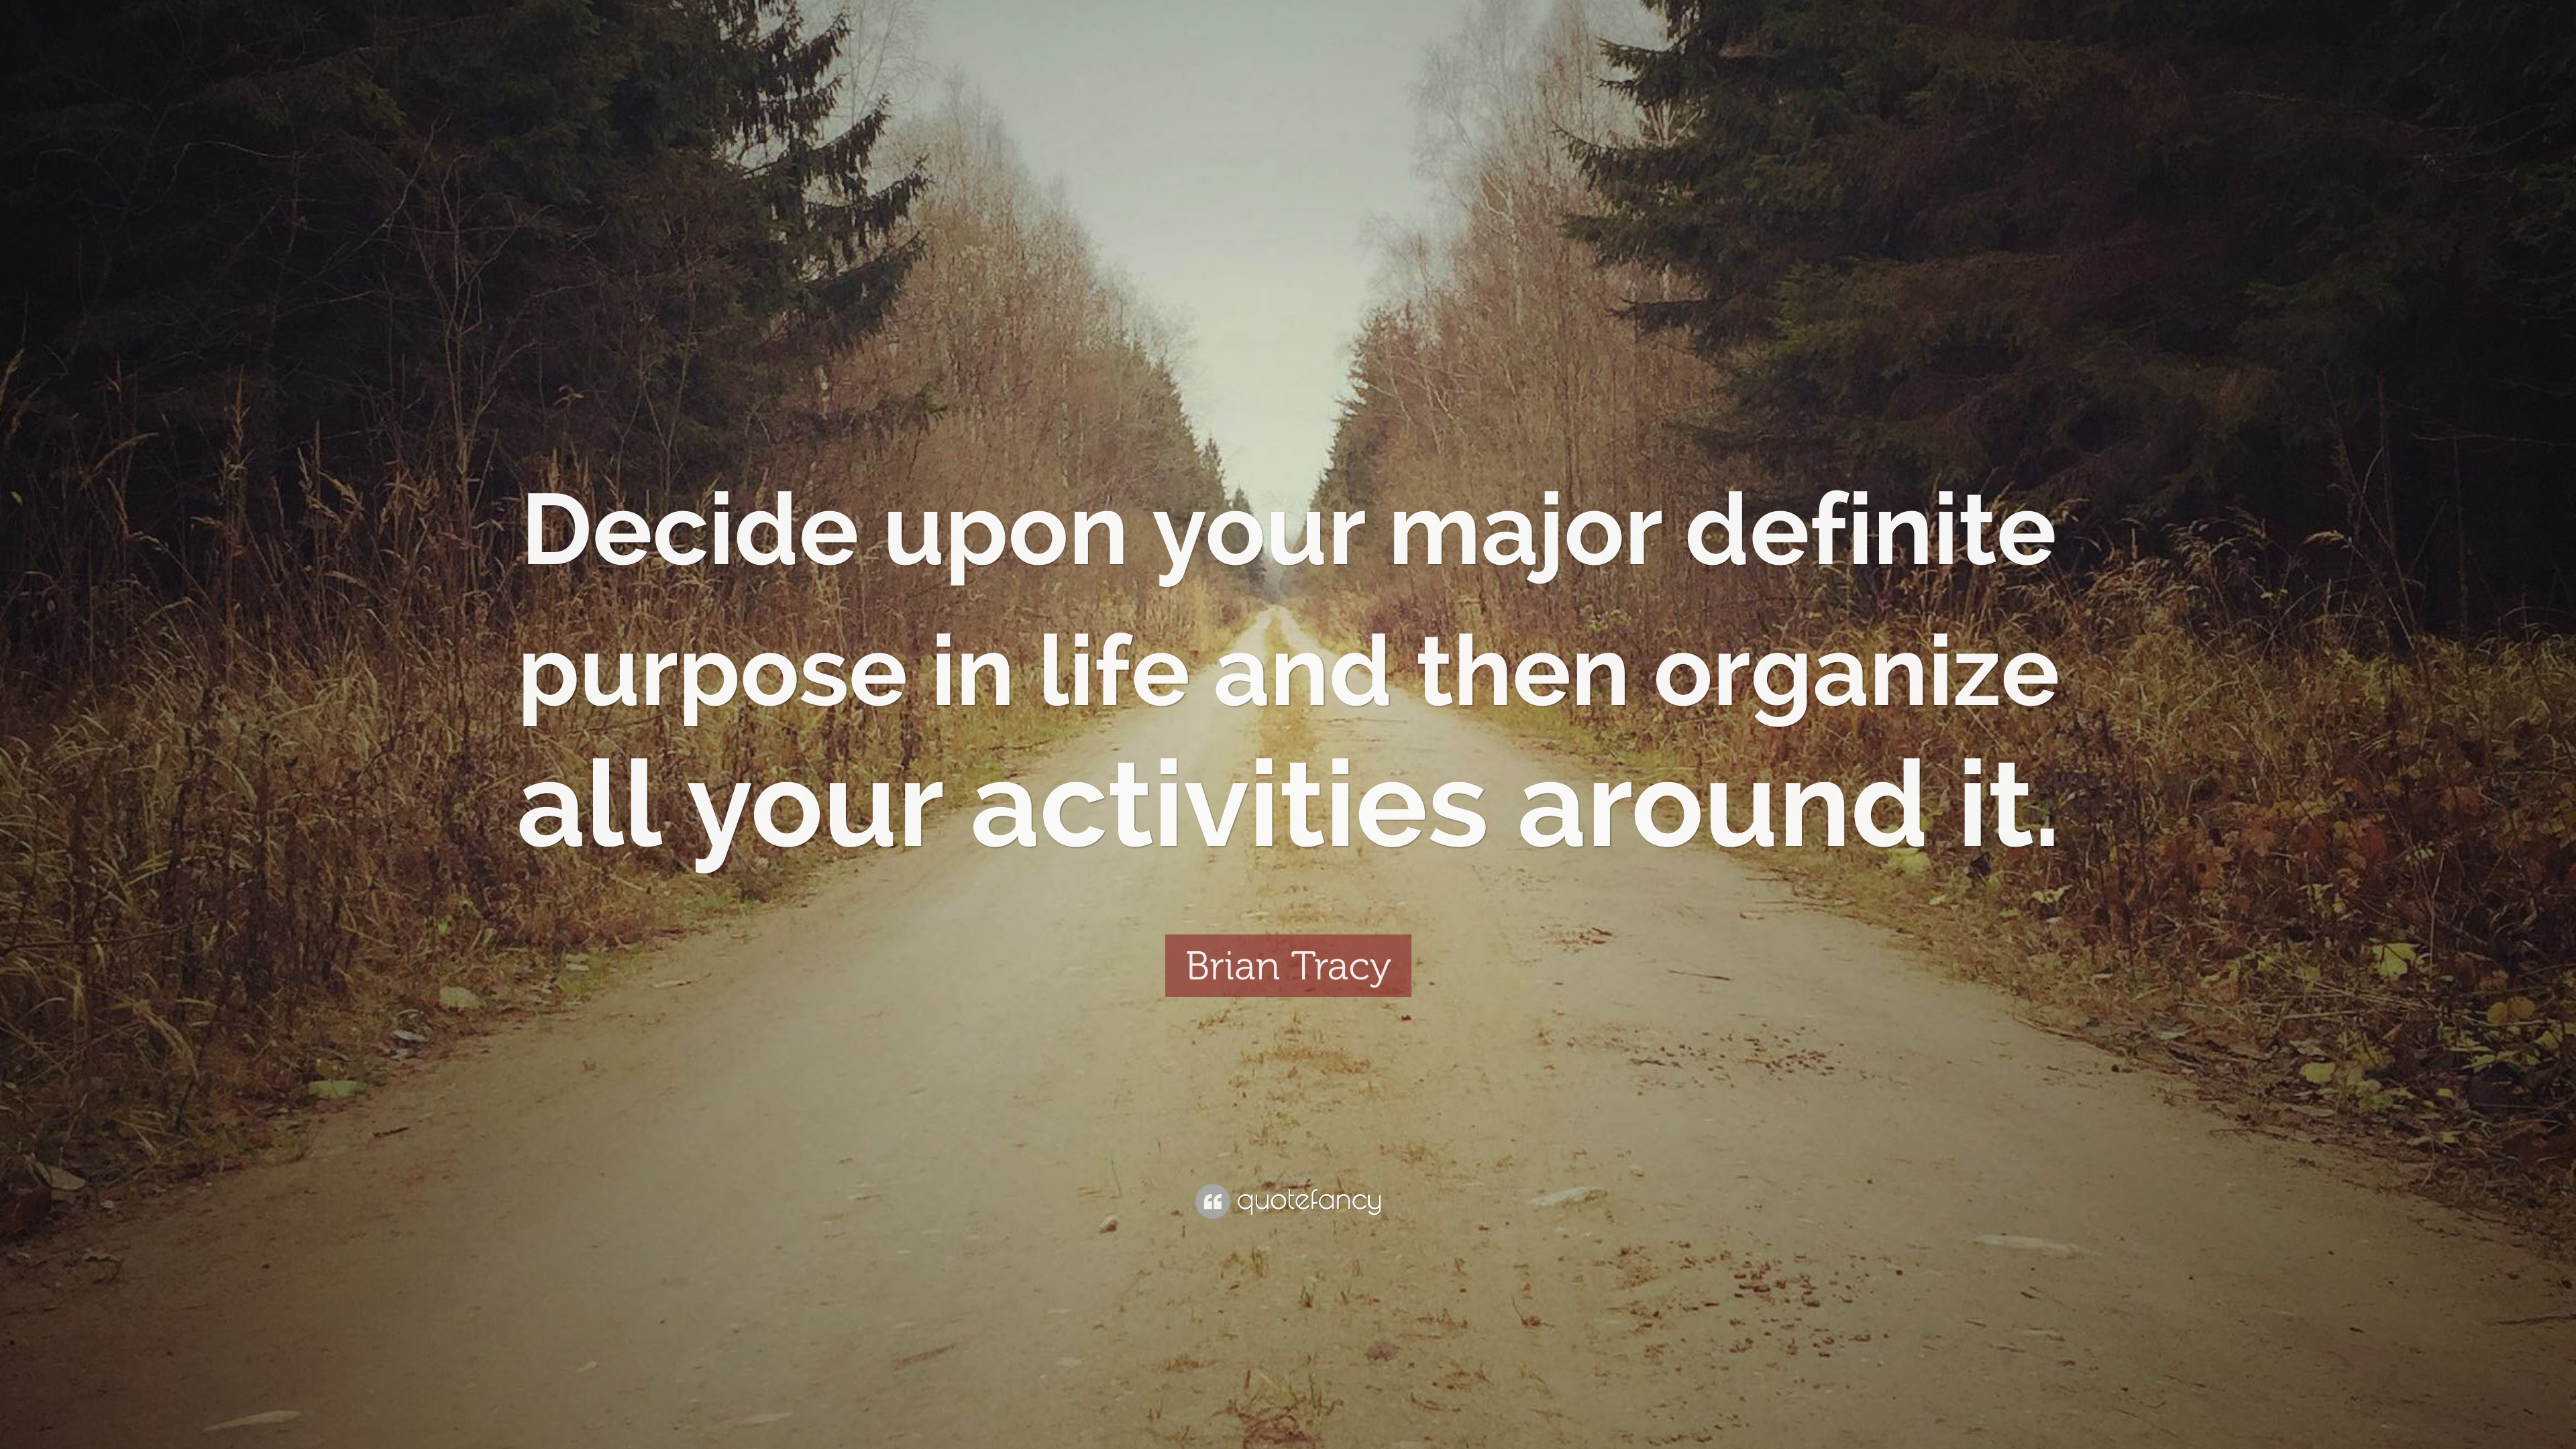 brian tracy quote decide upon your major definite purpose in life and then organize